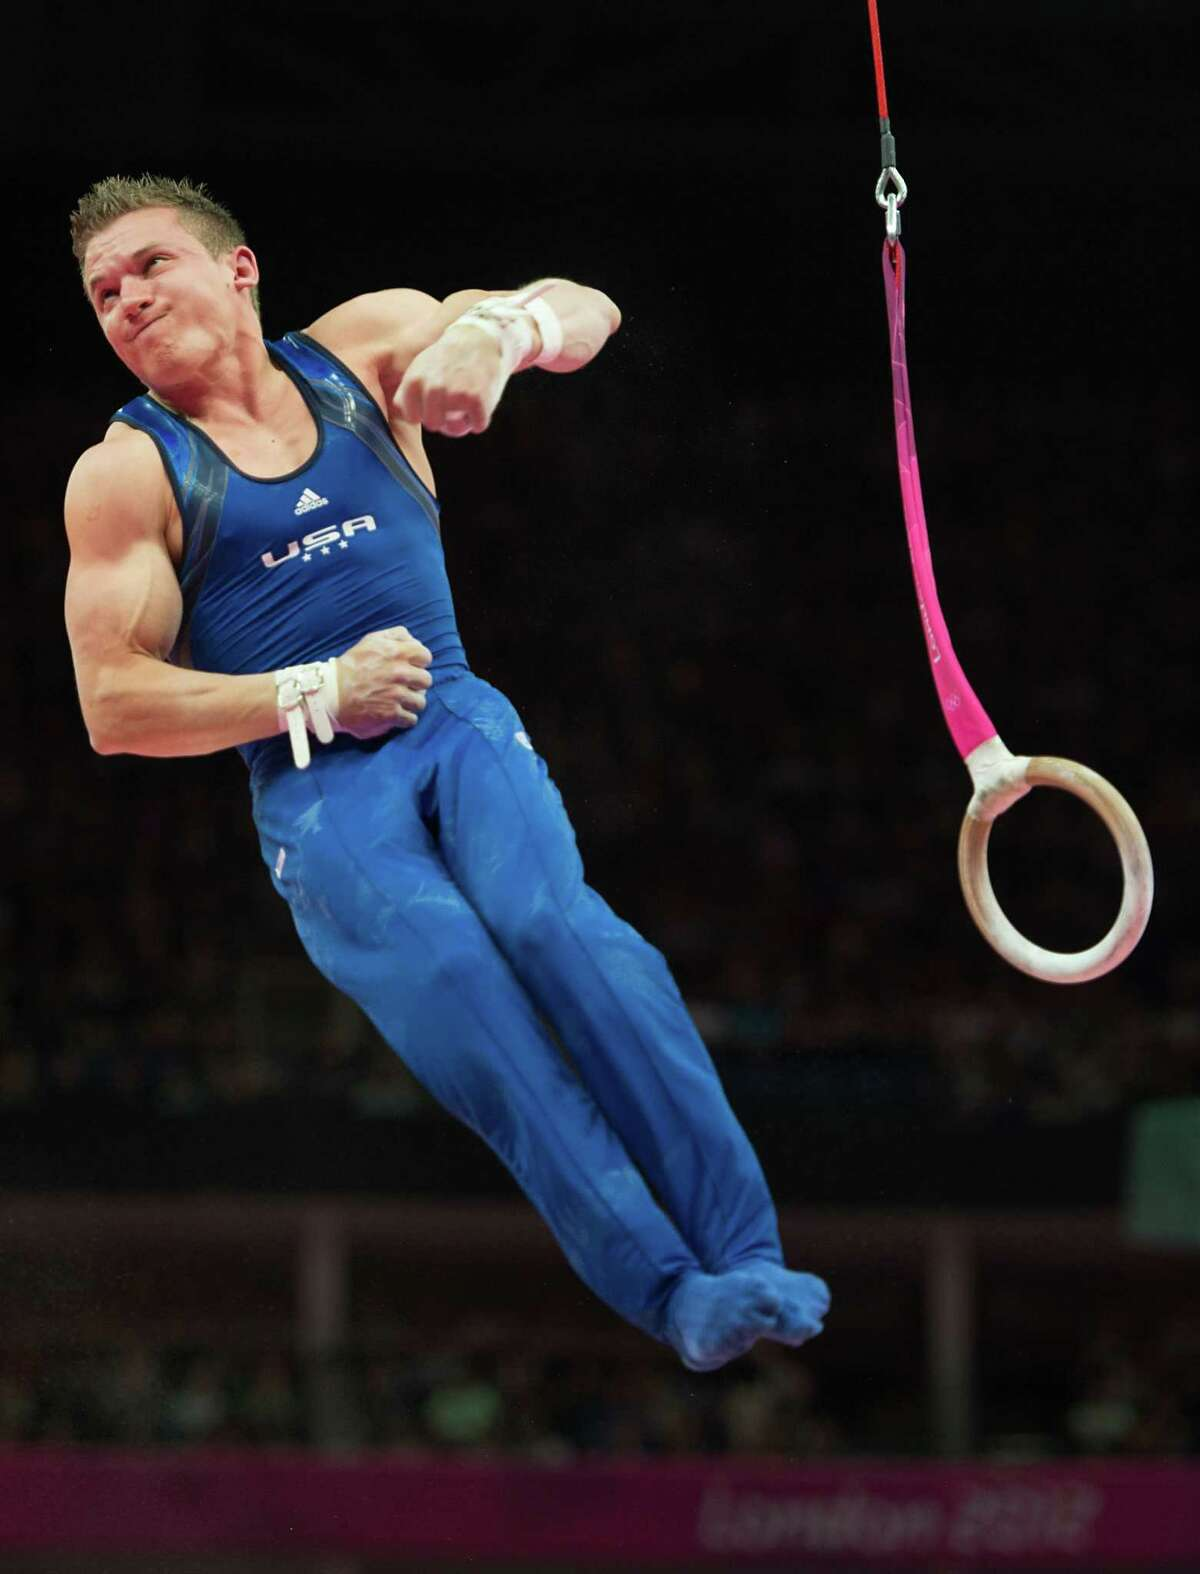 Jonathan Horton competes in the 2012 Olympics in London, which followed winning two medals in the 2008 Games in Beijing.